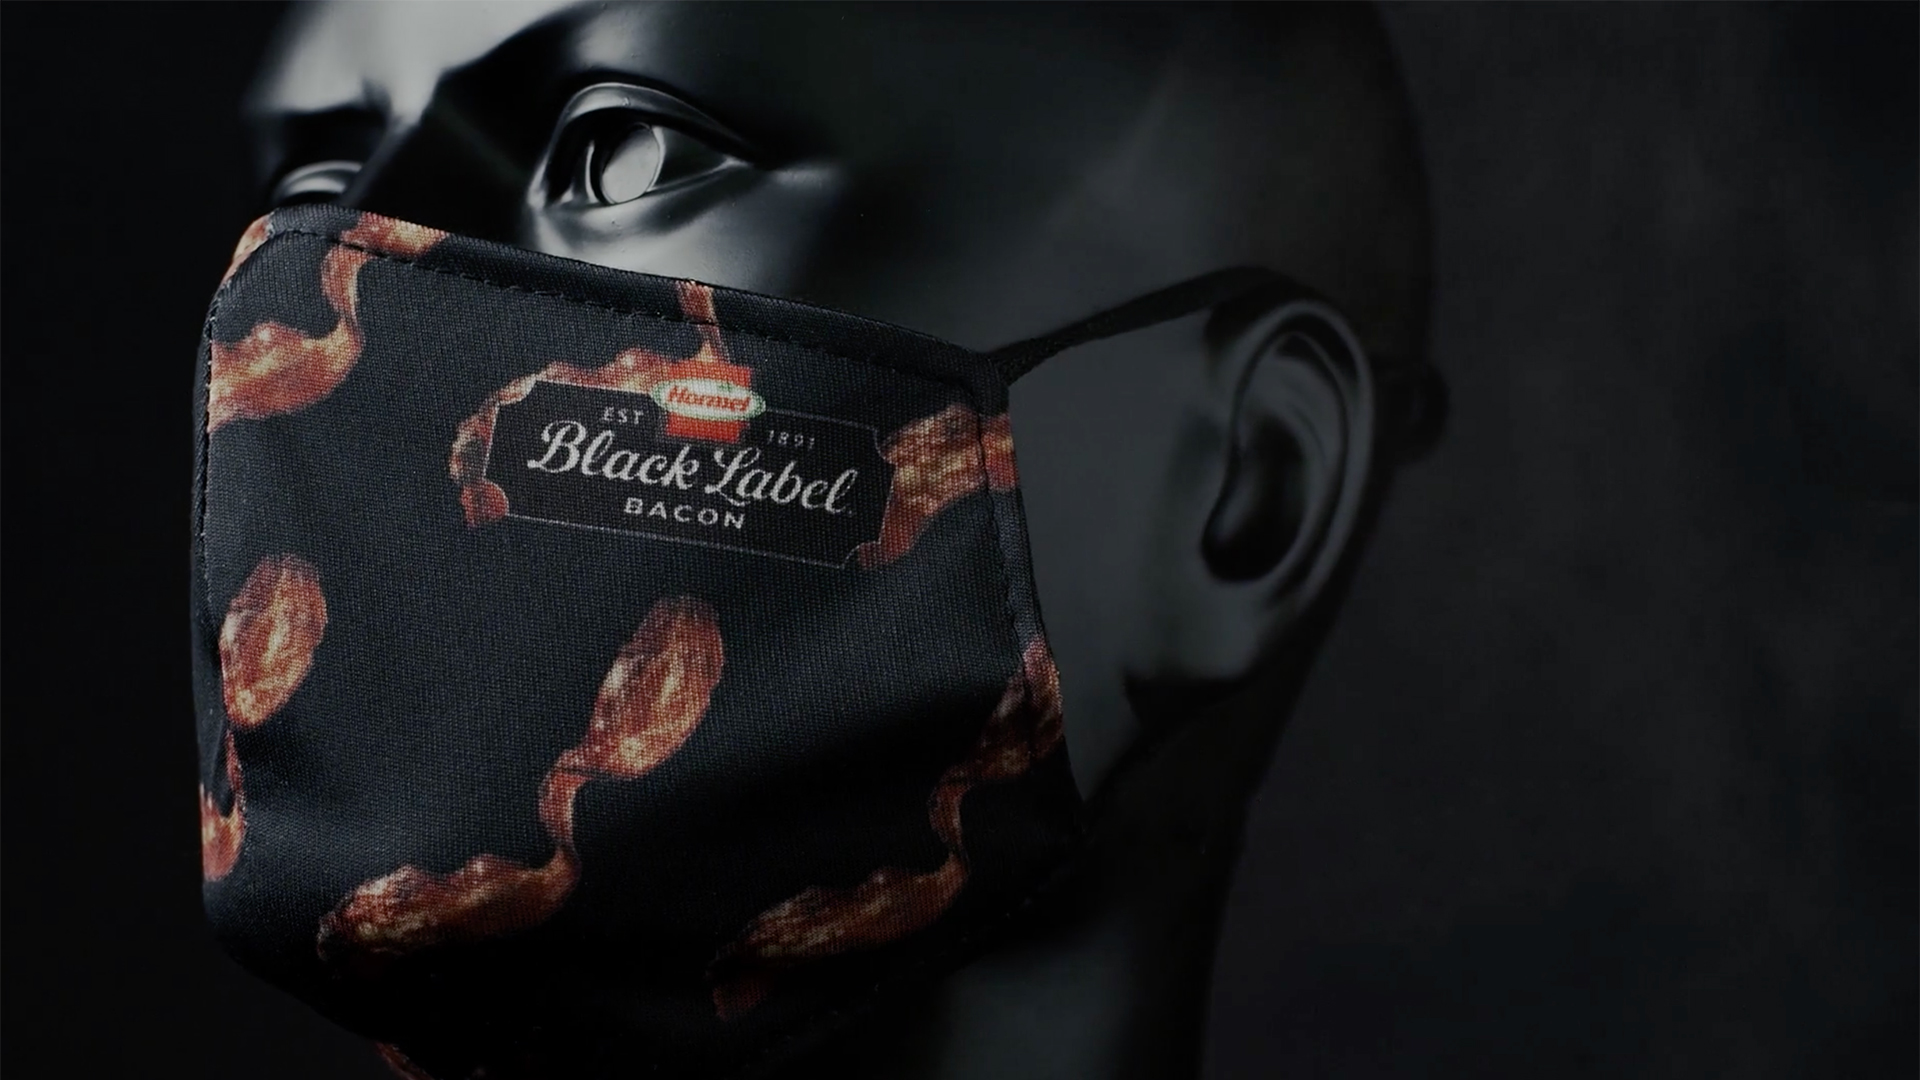 Hormel is giving away bacon-scented face masks so you can smell bacon everywhere you go